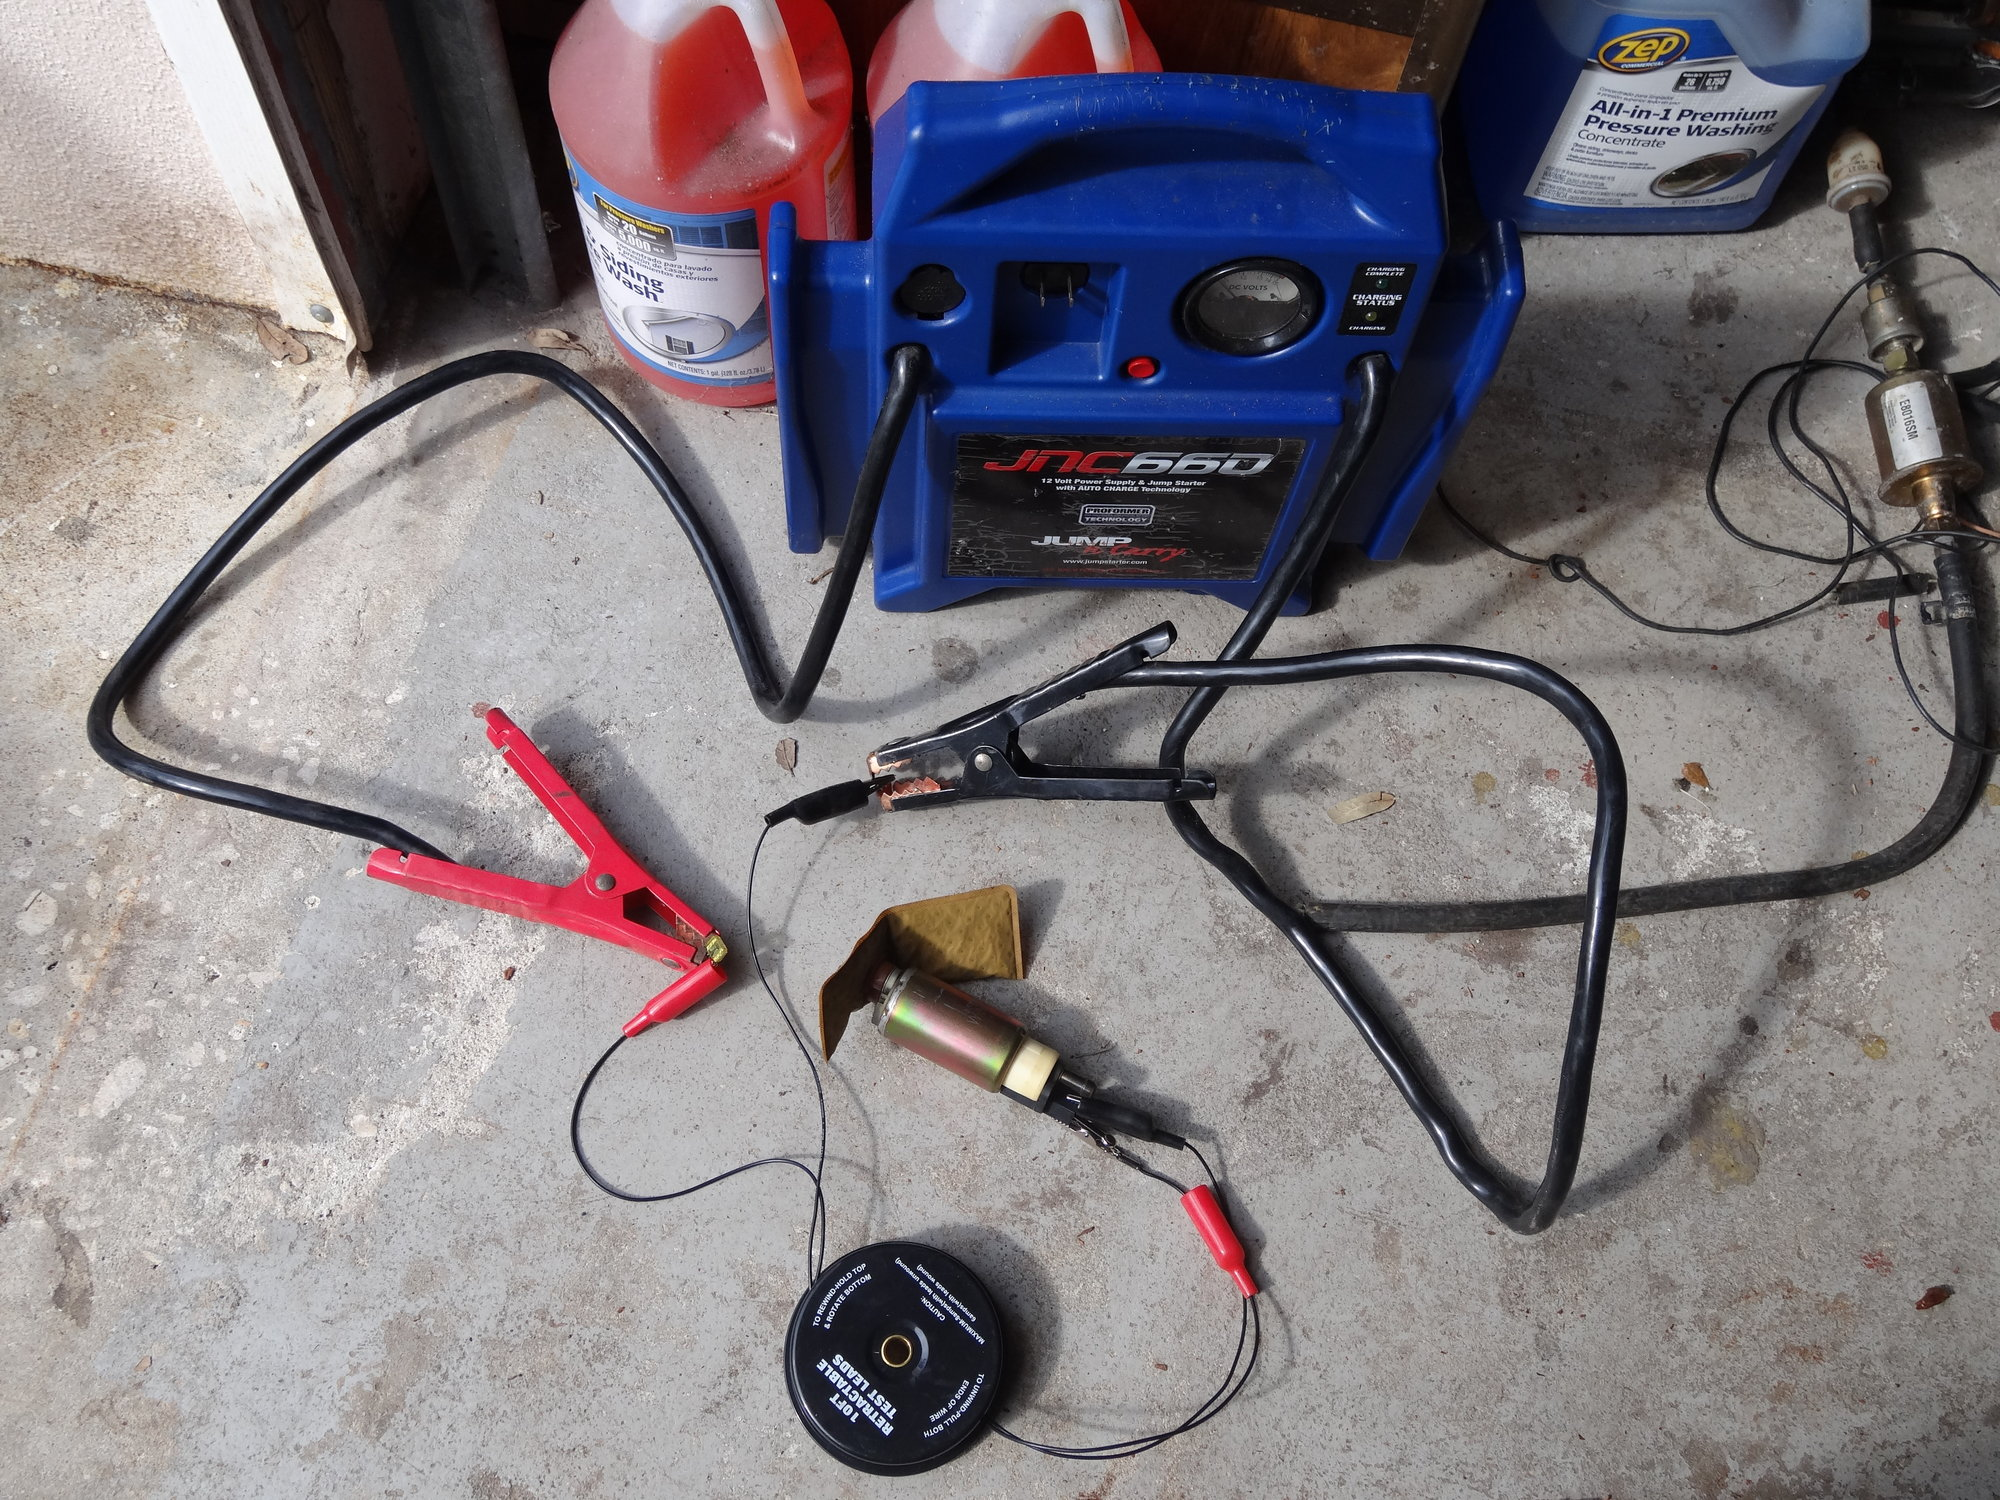 hight resolution of original fuel pump tested with 20 amp fuse in circuit it was no good